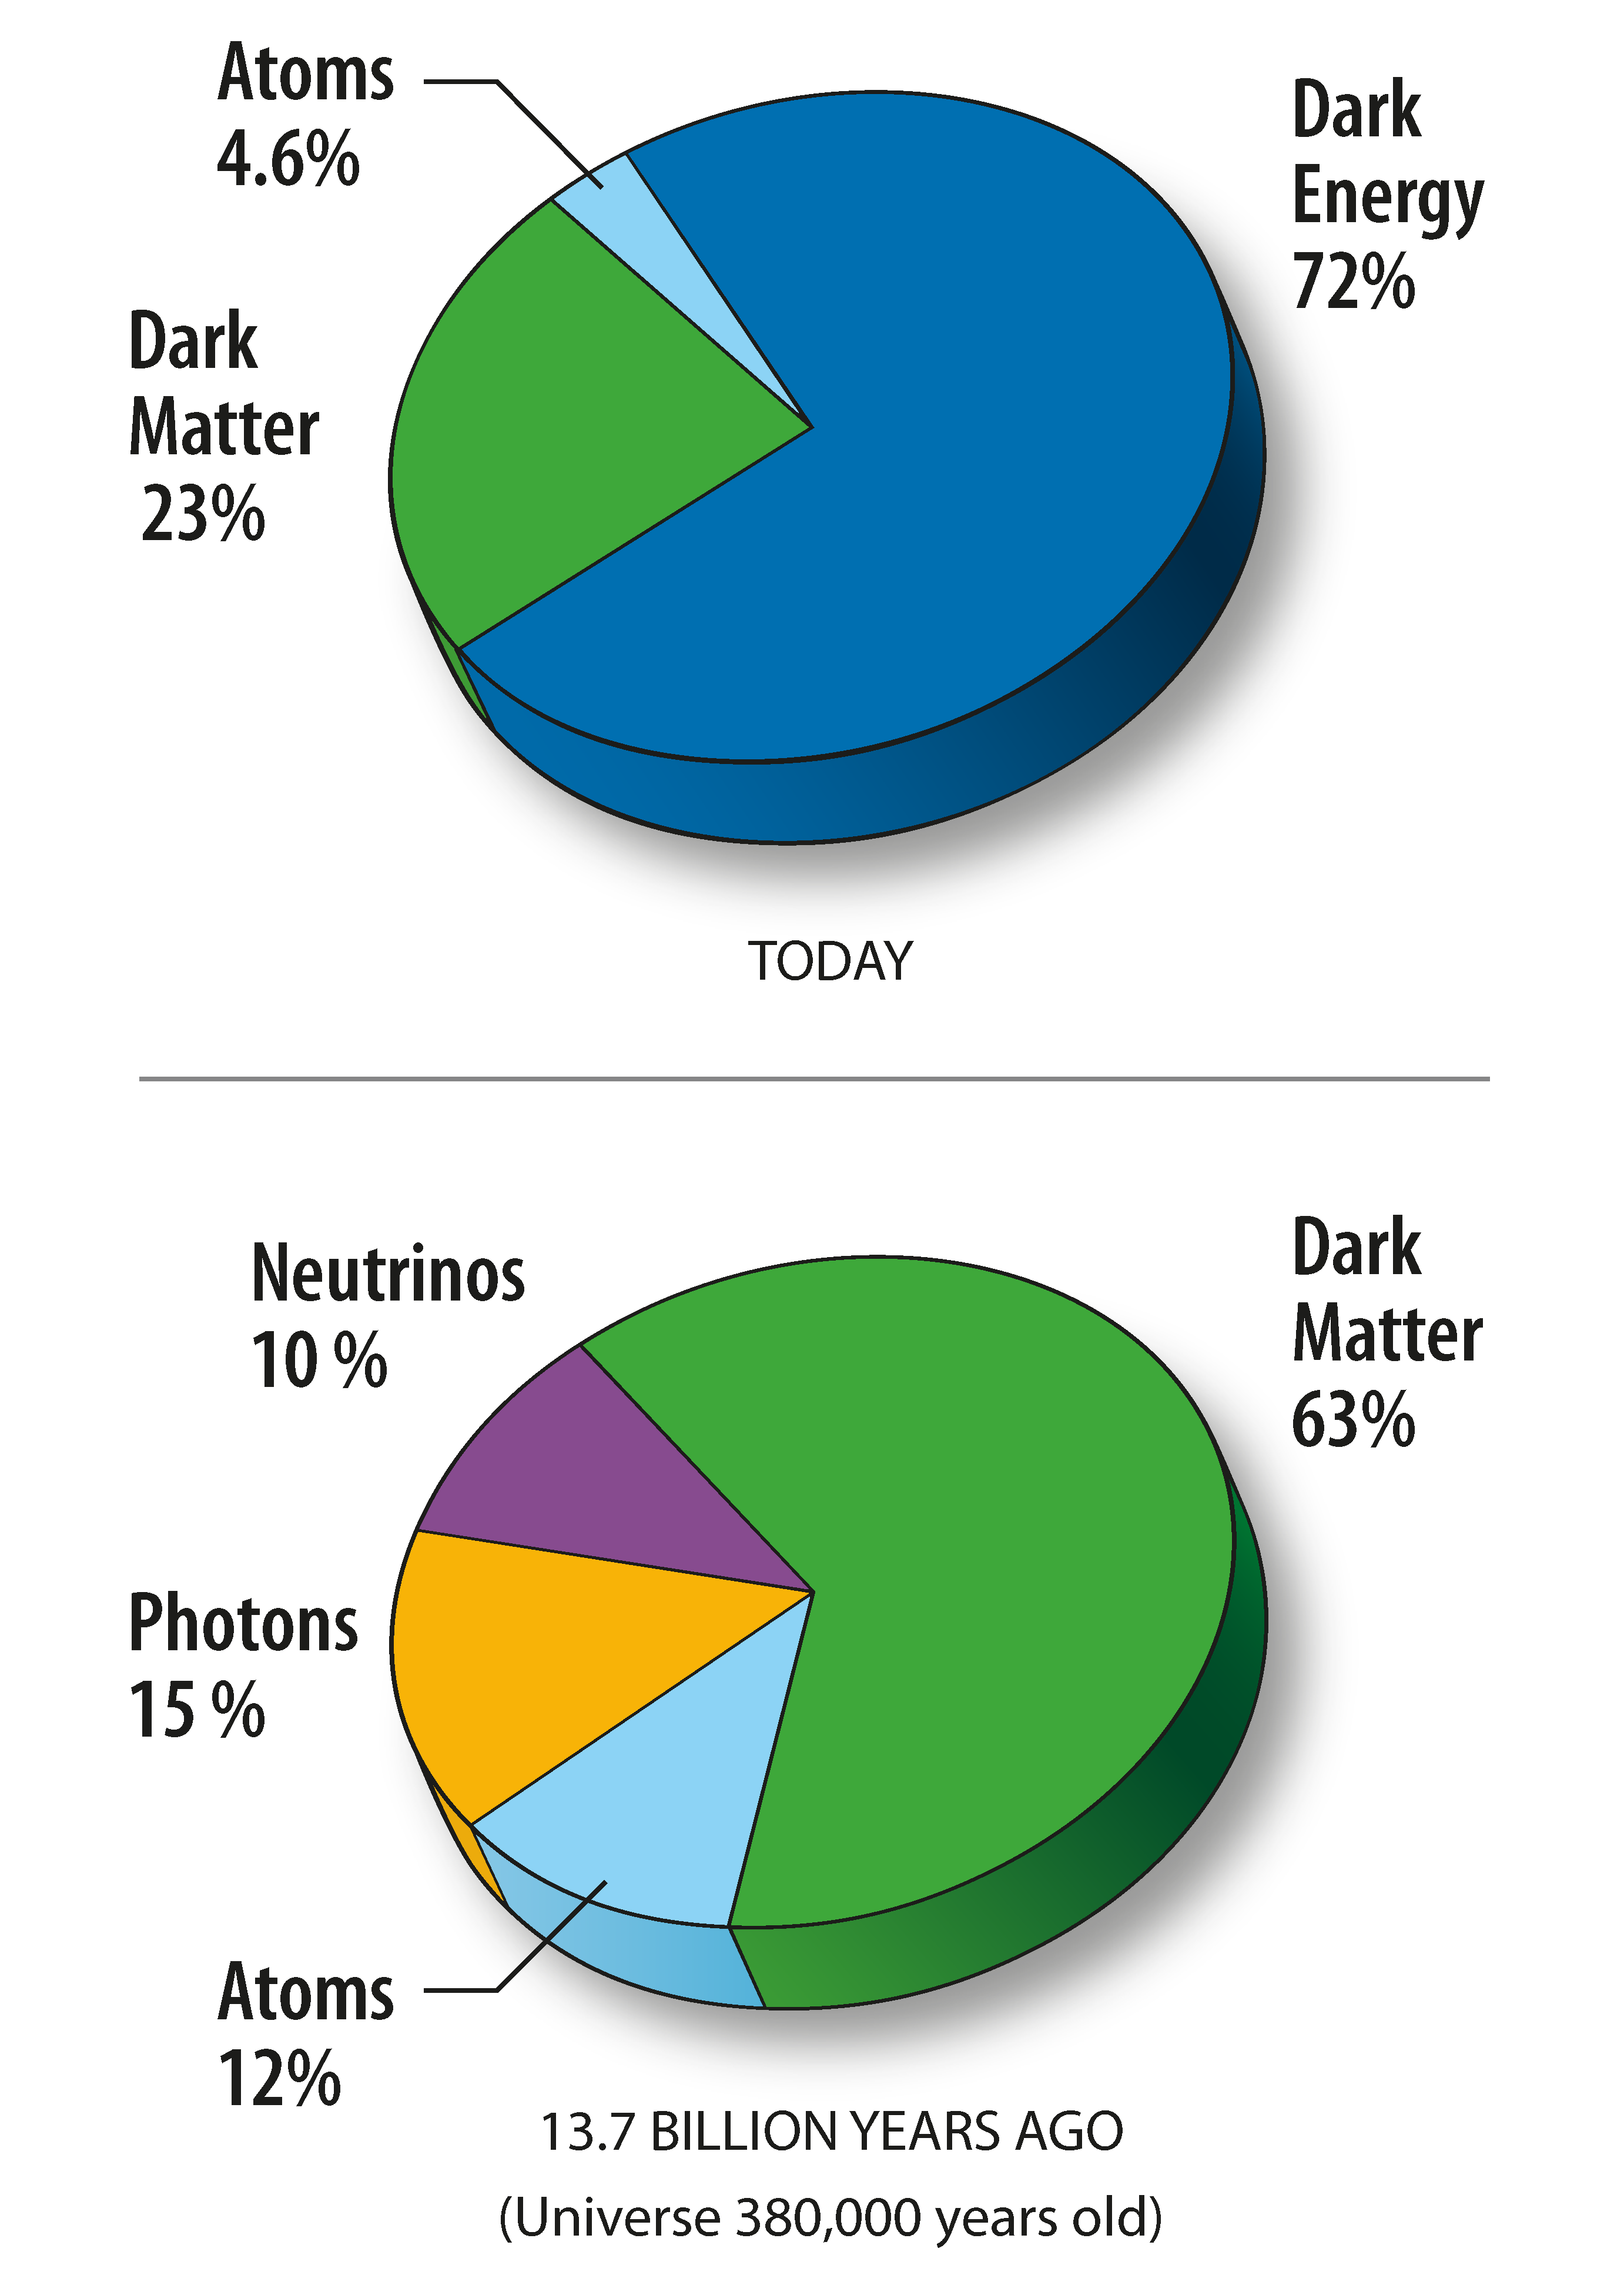 Pie Chart content of the universe